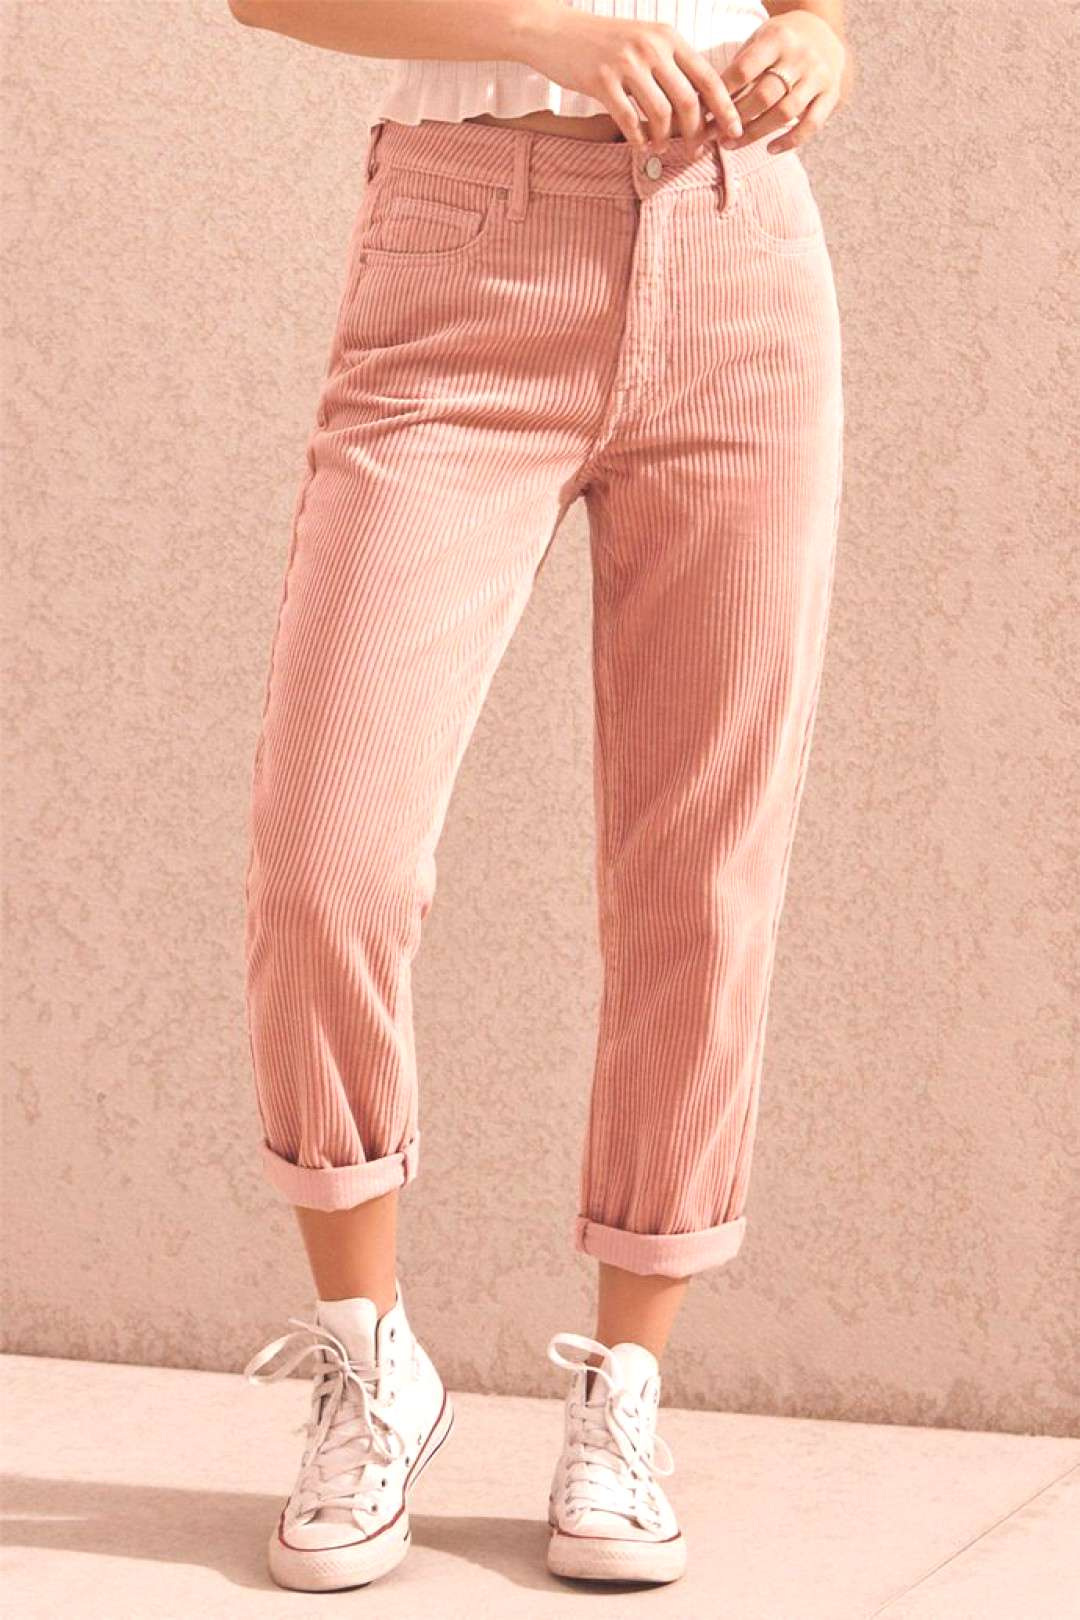 PacSun Hibiscus Cord Mom Jeans - PacSun Hibiscus Cord Mom Jeans - PacSun Hibiscus Cord Mom Jeans